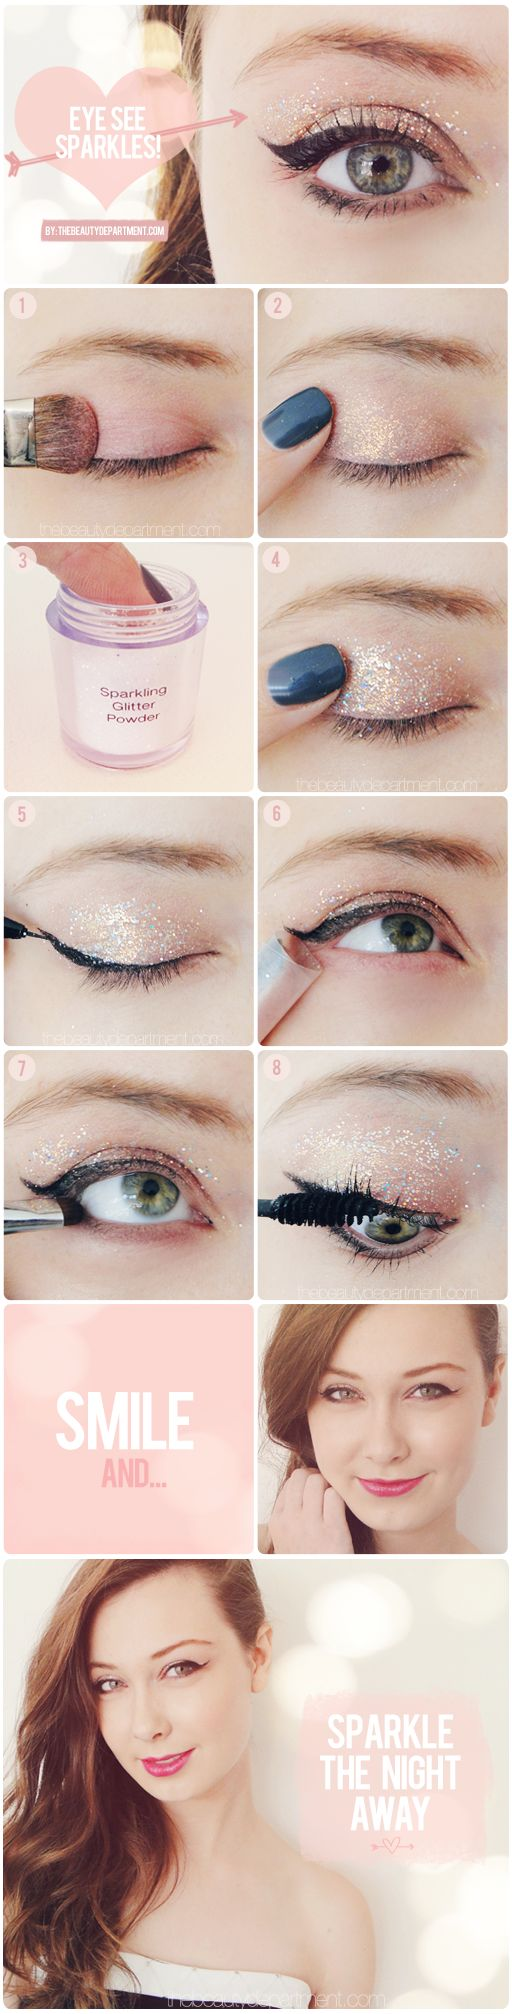 Be festive with your makeup by adding glitter to your eyes!